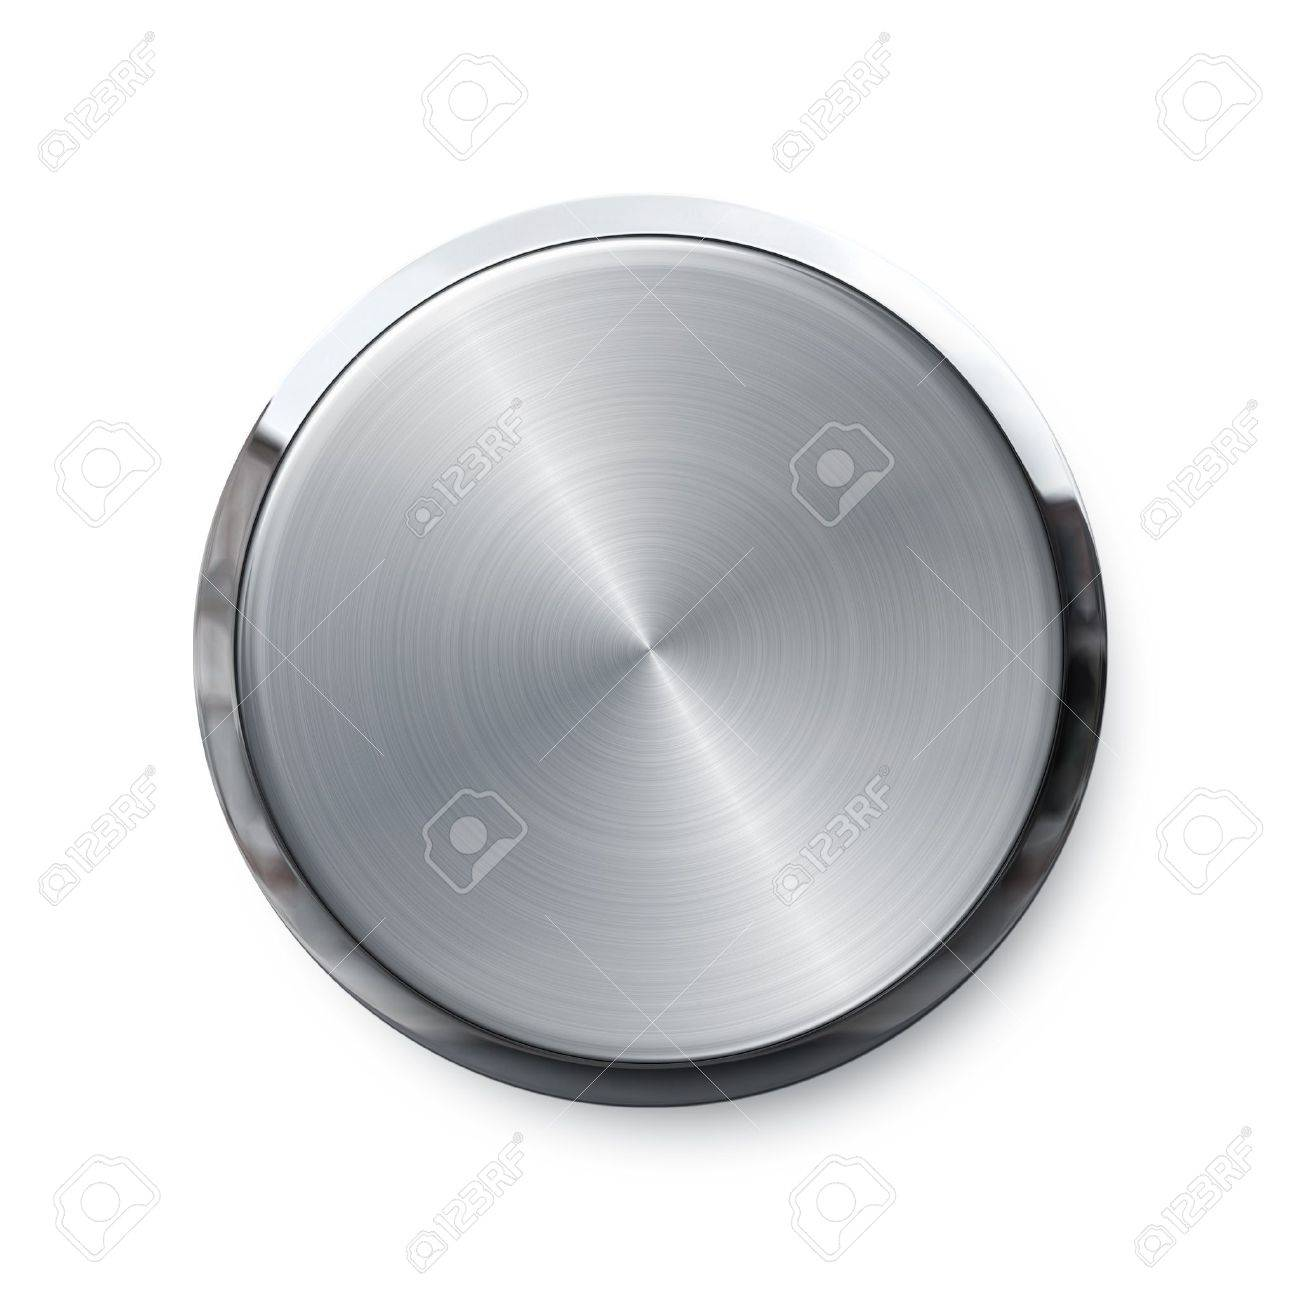 Blank silver shiny push button Stock Photo - 10983016